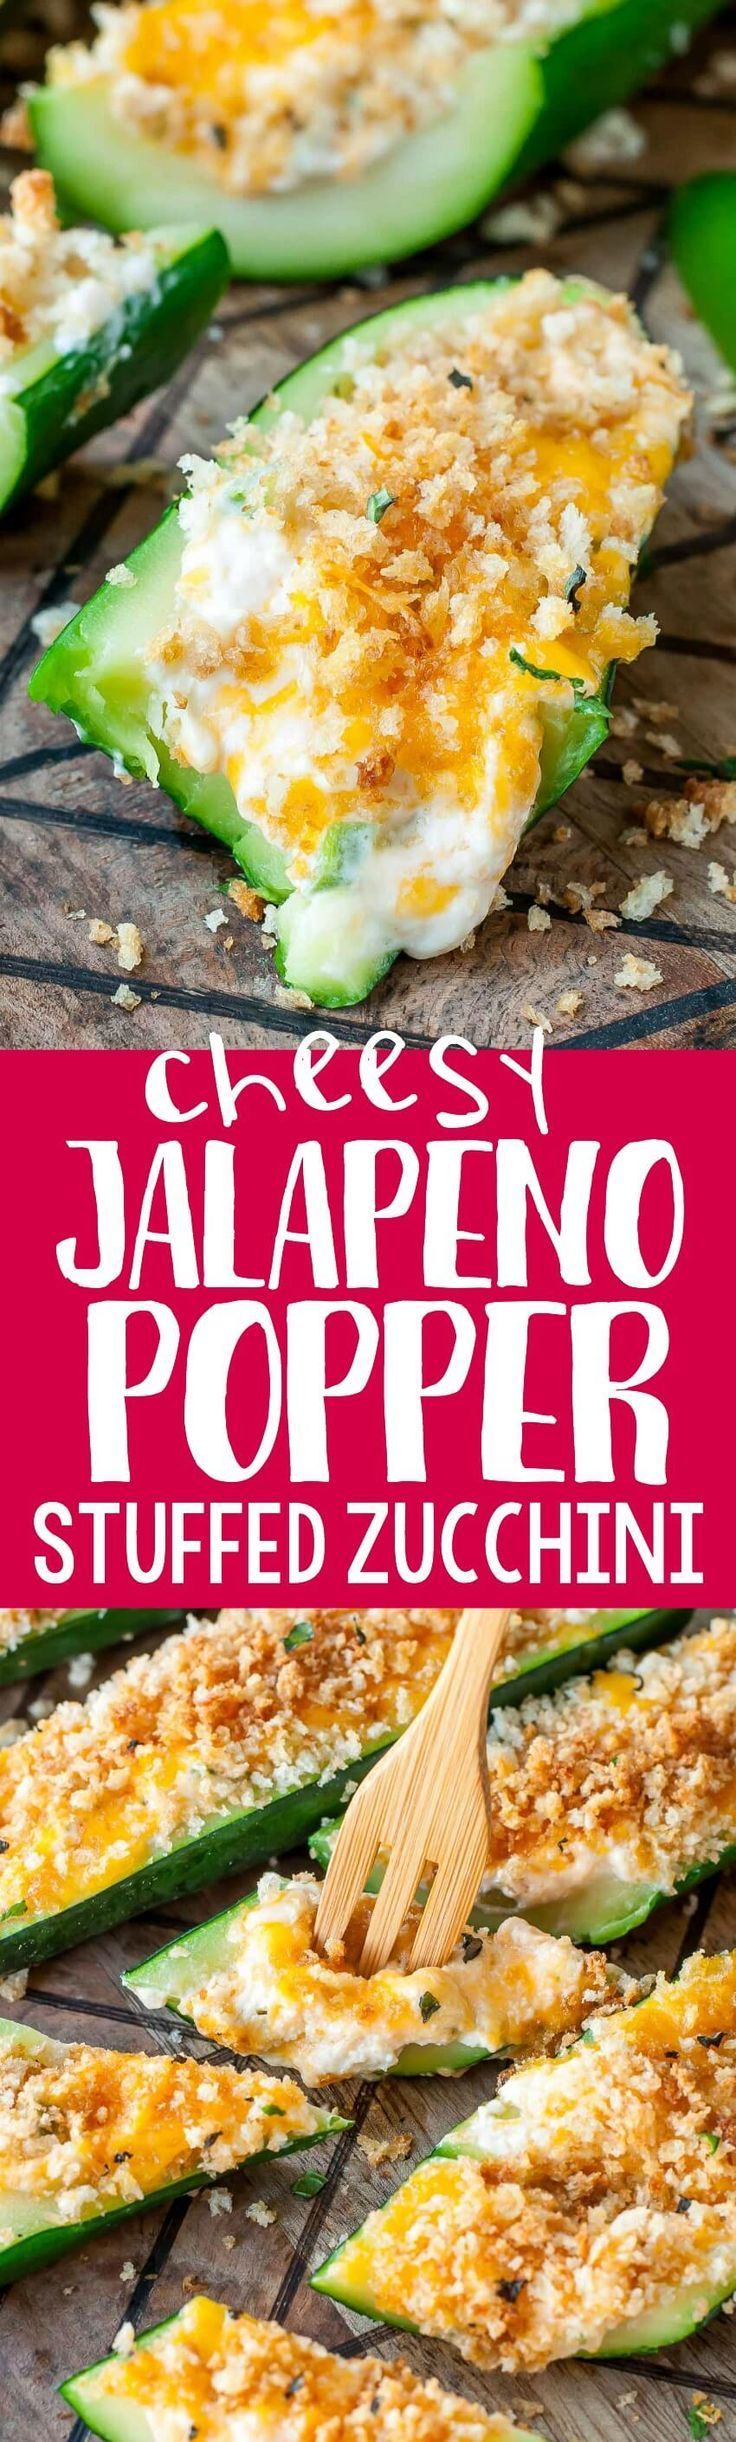 1035 best crazy for comfort food images on pinterest food cheesy jalapeo popper stuffed zucchini spicy food recipesappetizer recipesparty appetizersvegetarian forumfinder Gallery